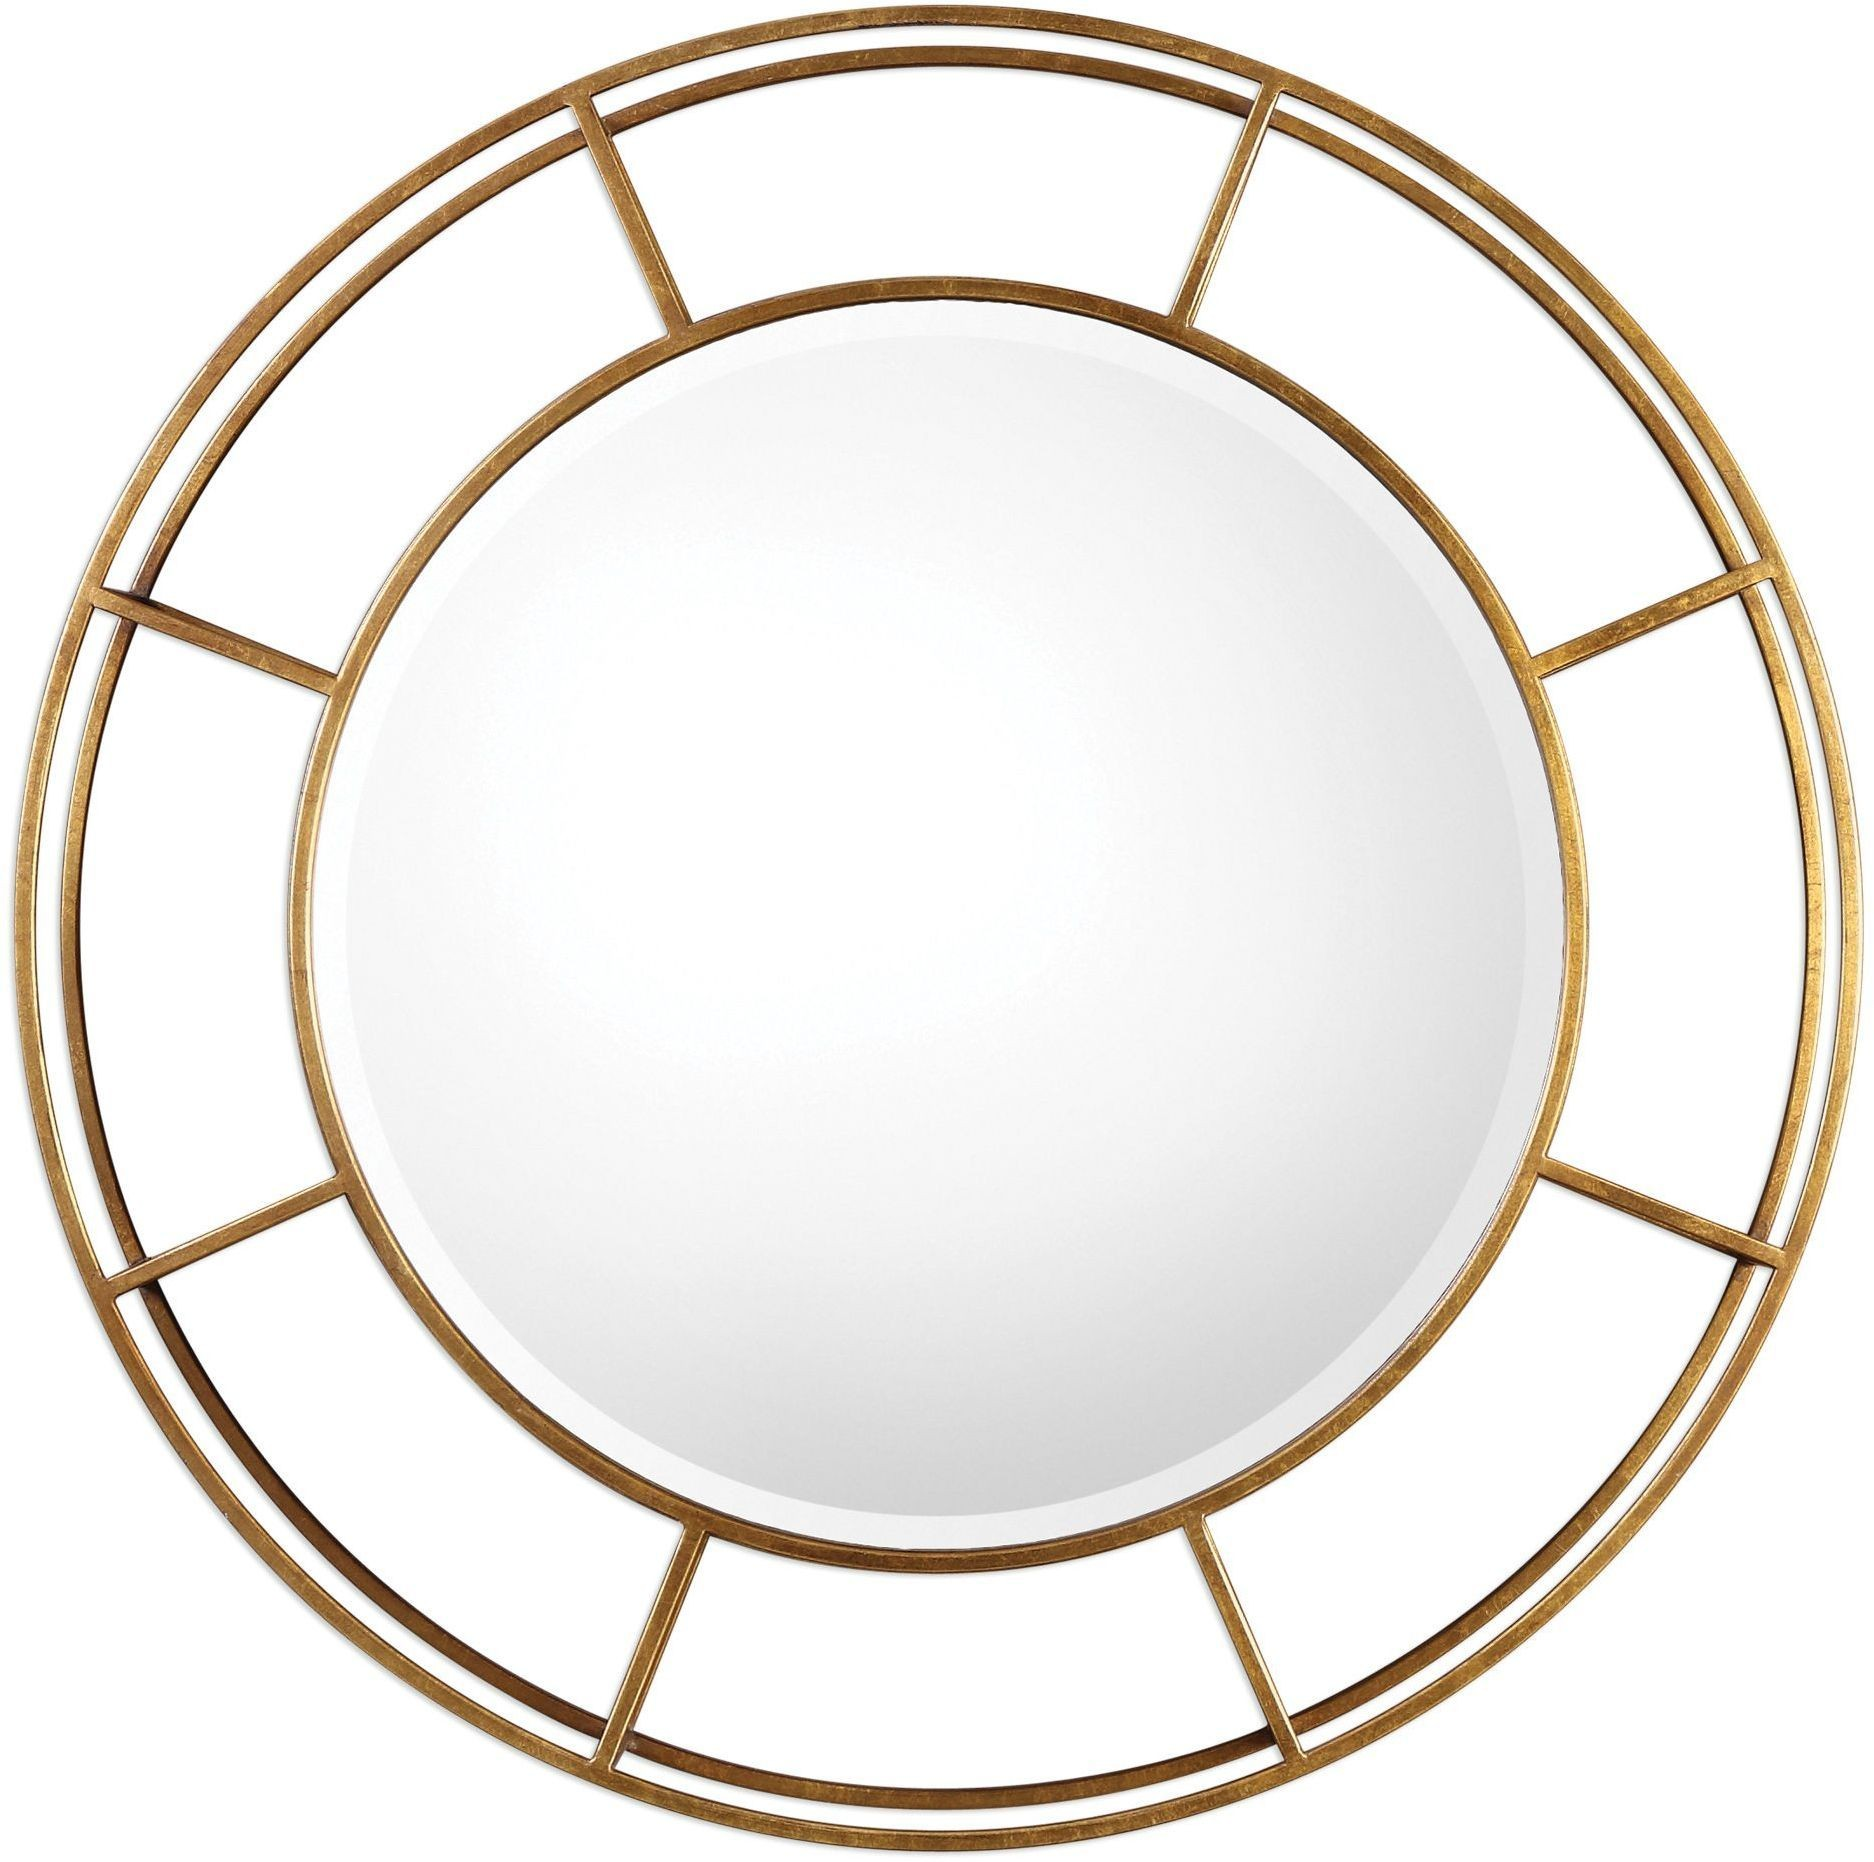 Salleron gold round mirror 09147 uttermost for Round mirror